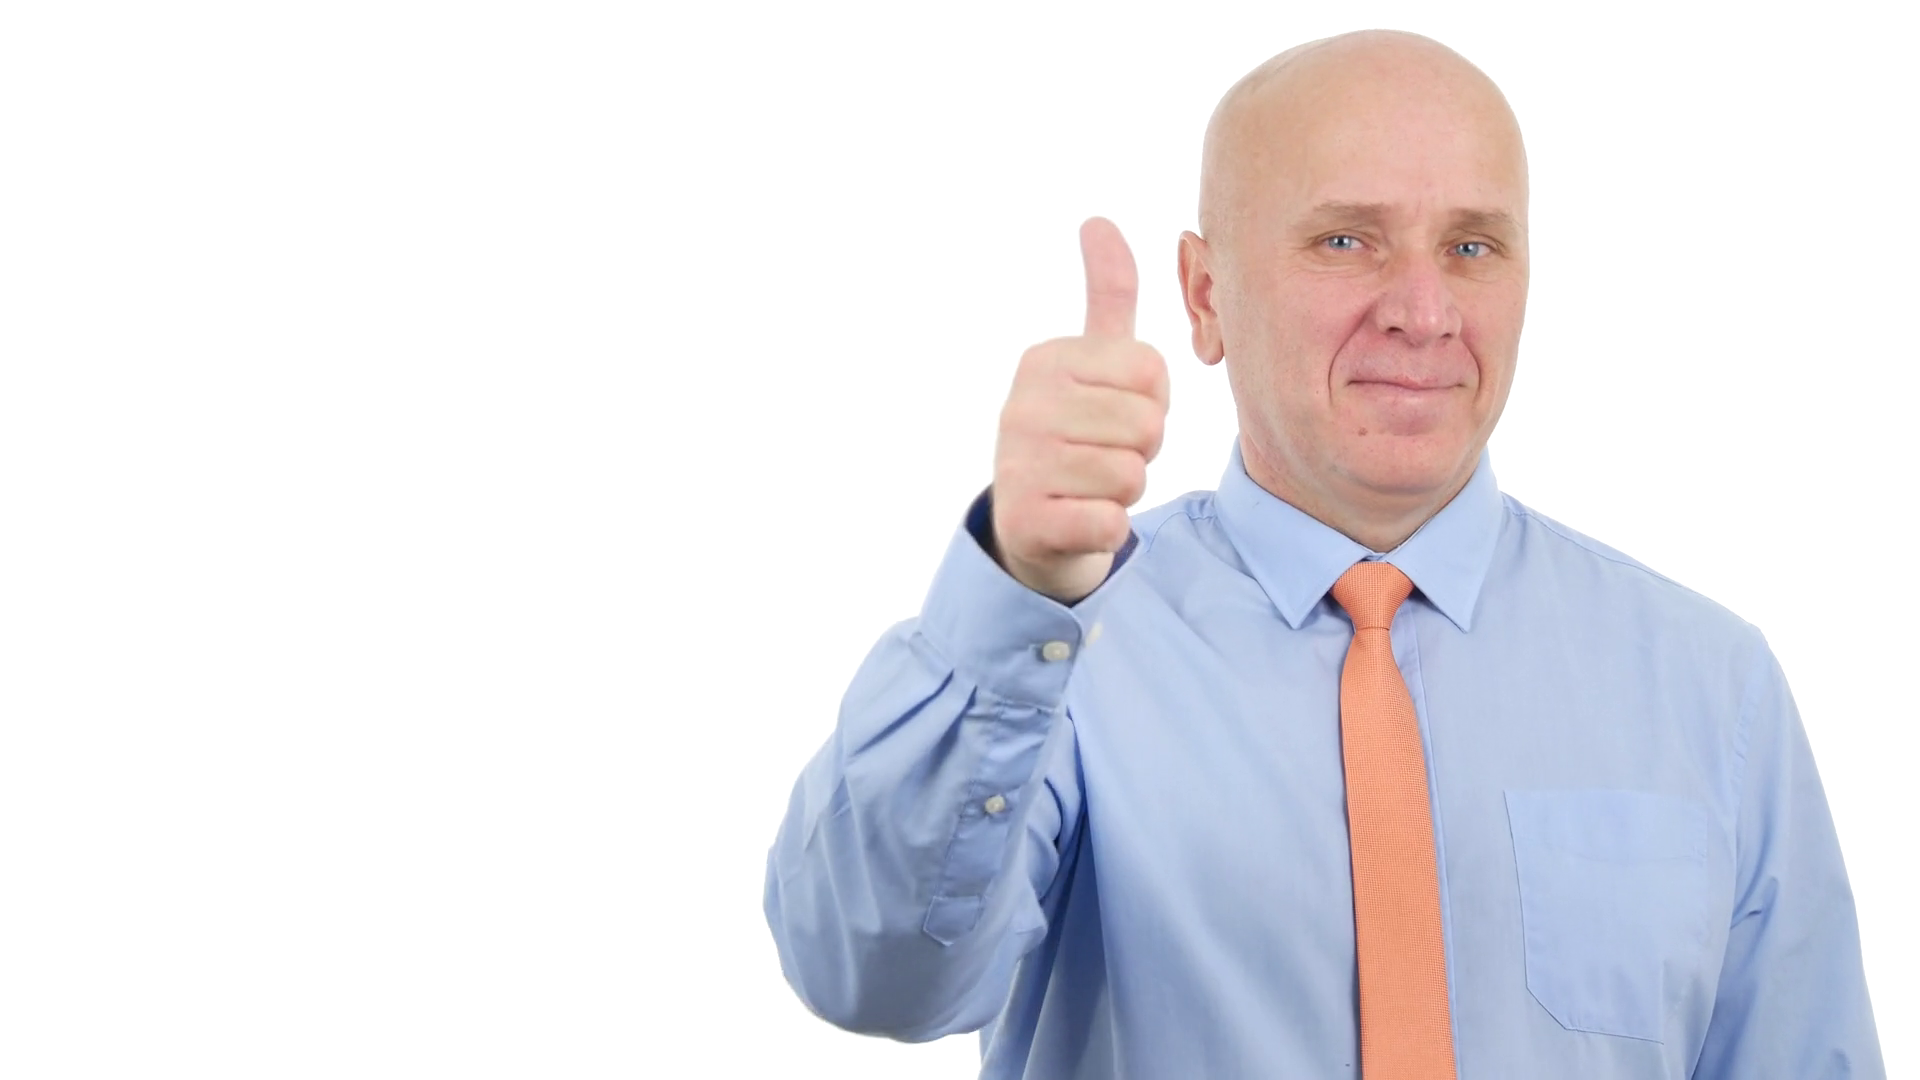 Confident Businessman Gesturing Thumbs Up Victory Sign Good Job ...